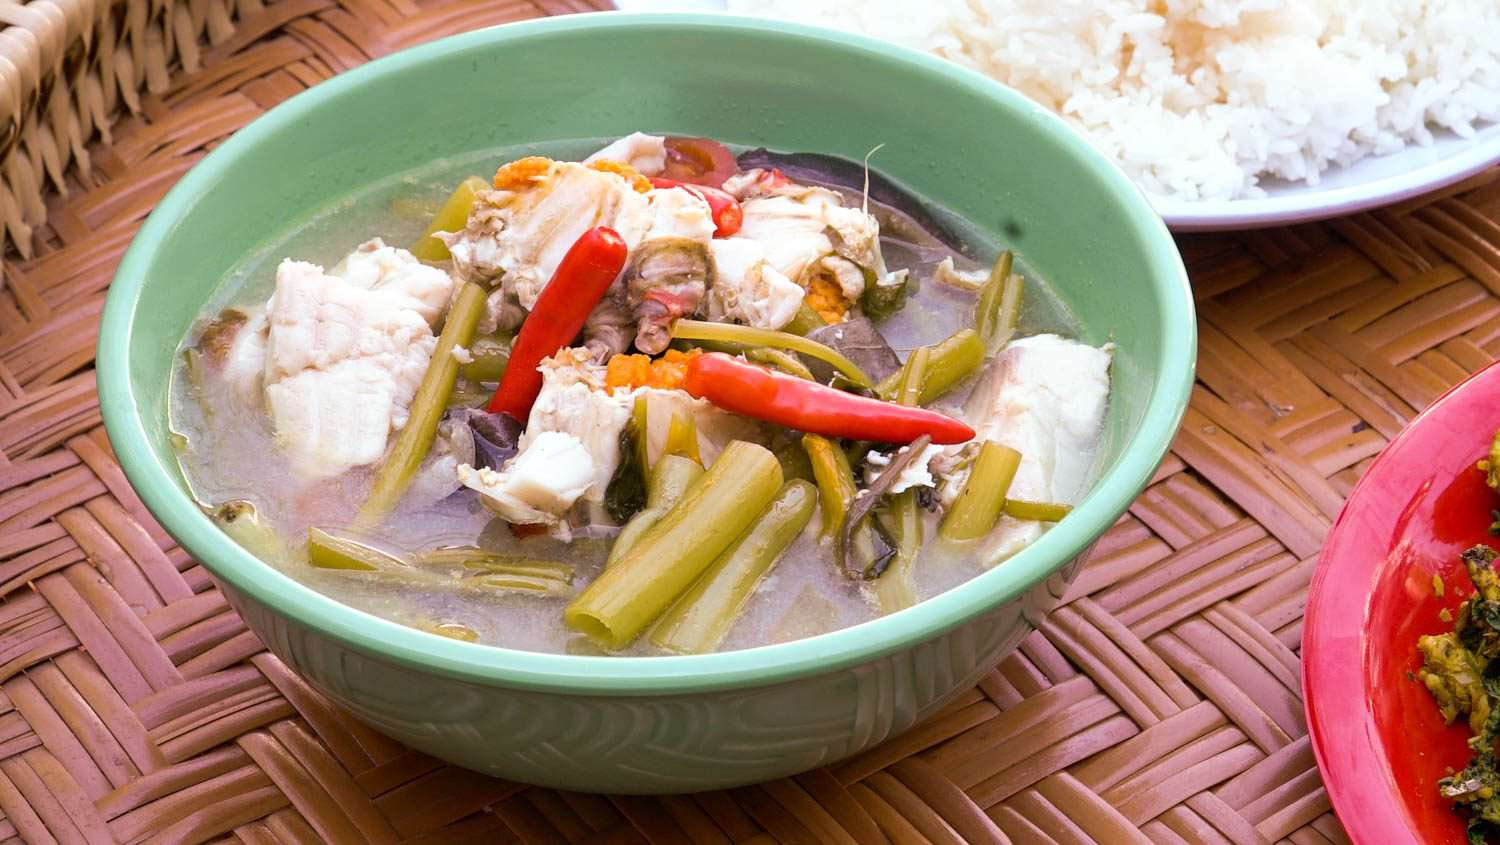 Somlor machew srai (Cambodian fish and crab soup with water spinach)